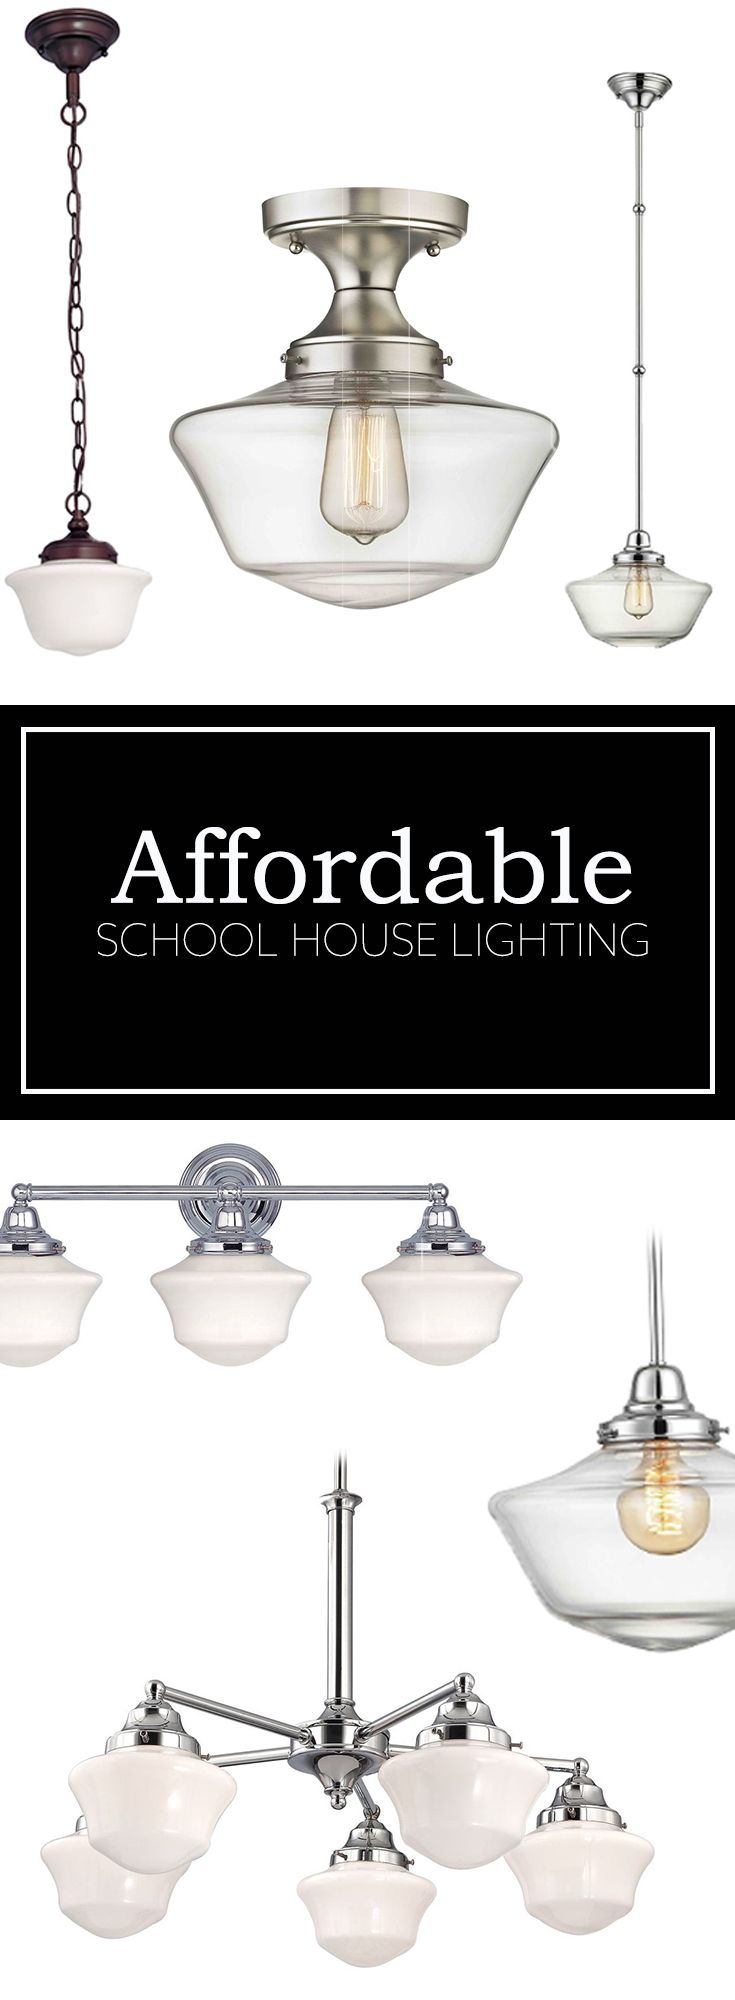 Schoolhouse lighting pendant lights, hallway lighting, bathroom lighting. New clear schoolhouse glass looks great in farmhouse style designs too!